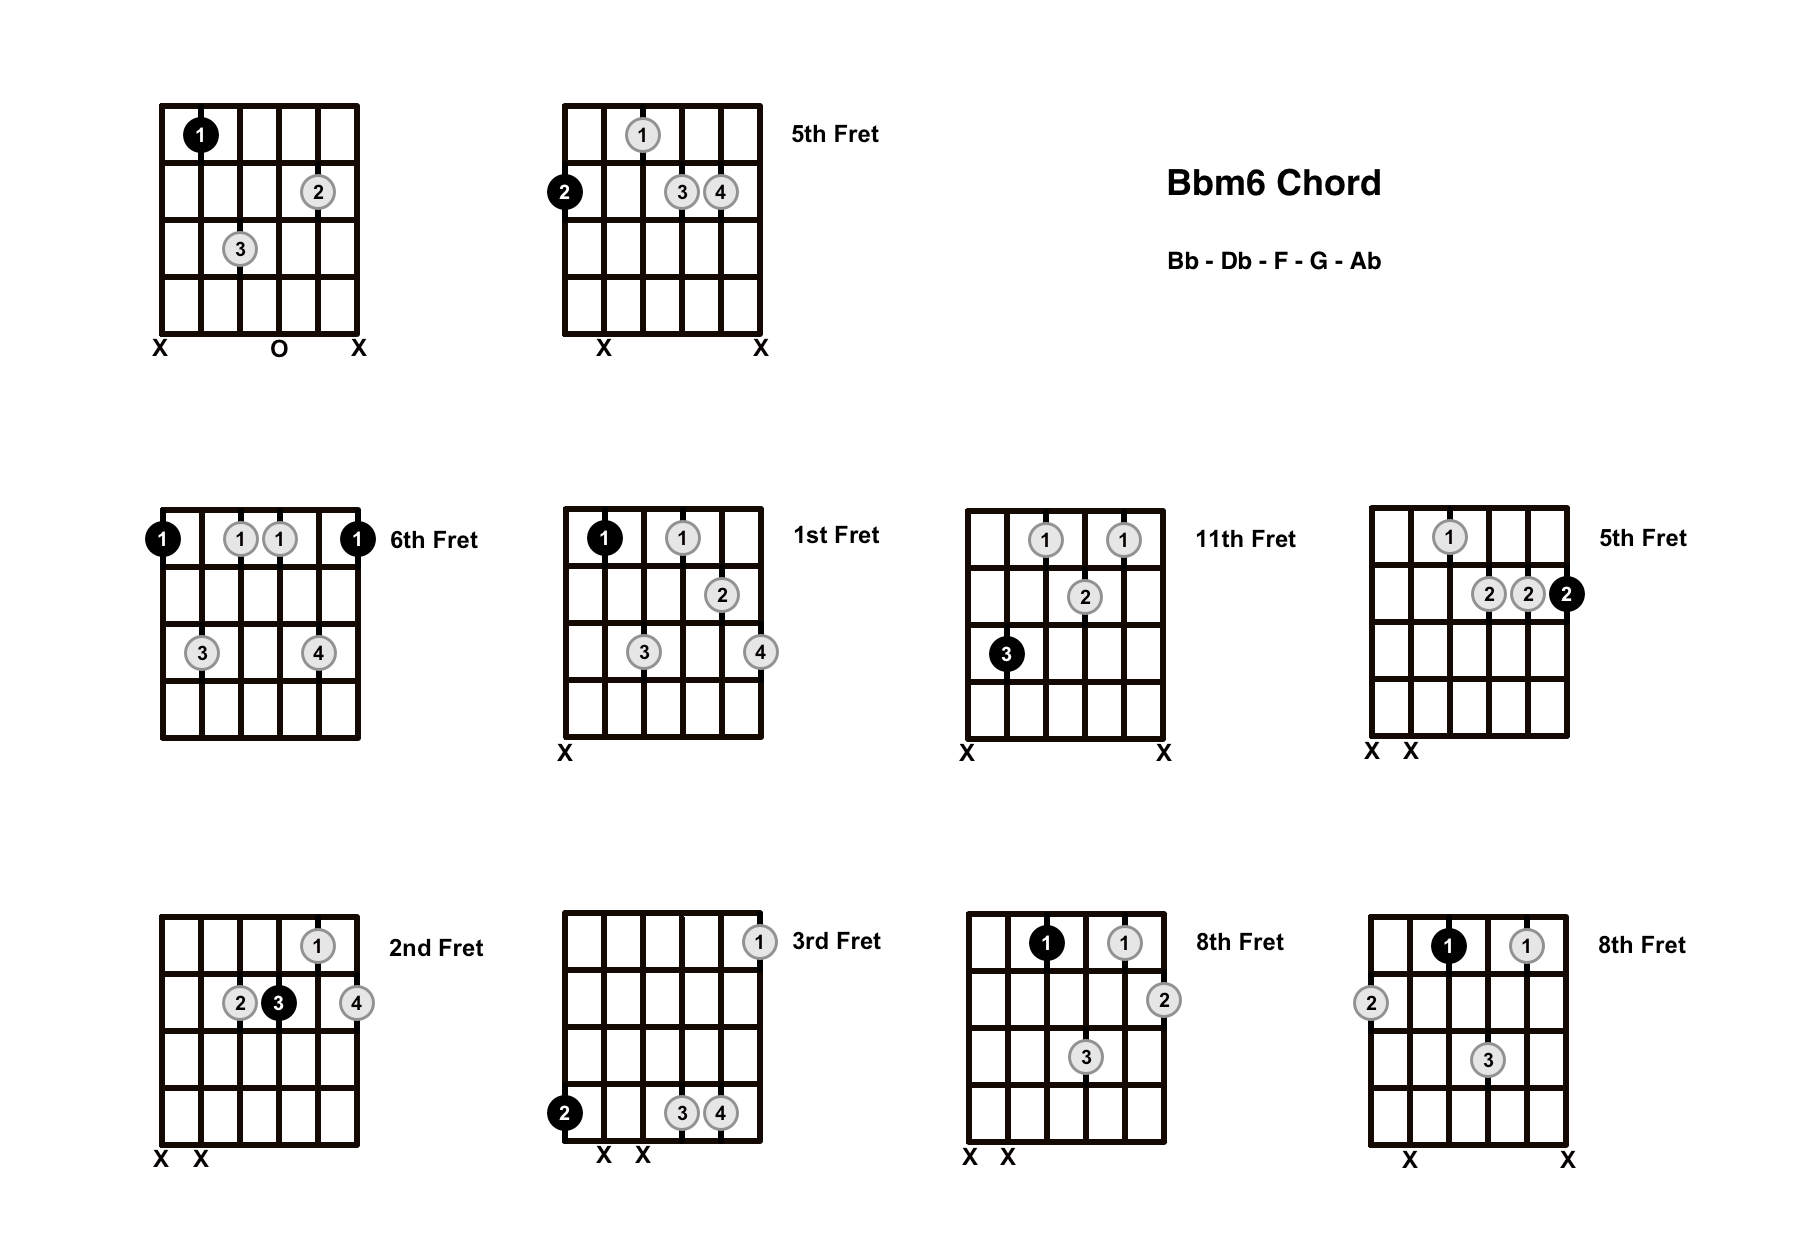 Bbm6 Chord On The Guitar (B Flat minor 6) – Diagrams, Finger Positions and Theory